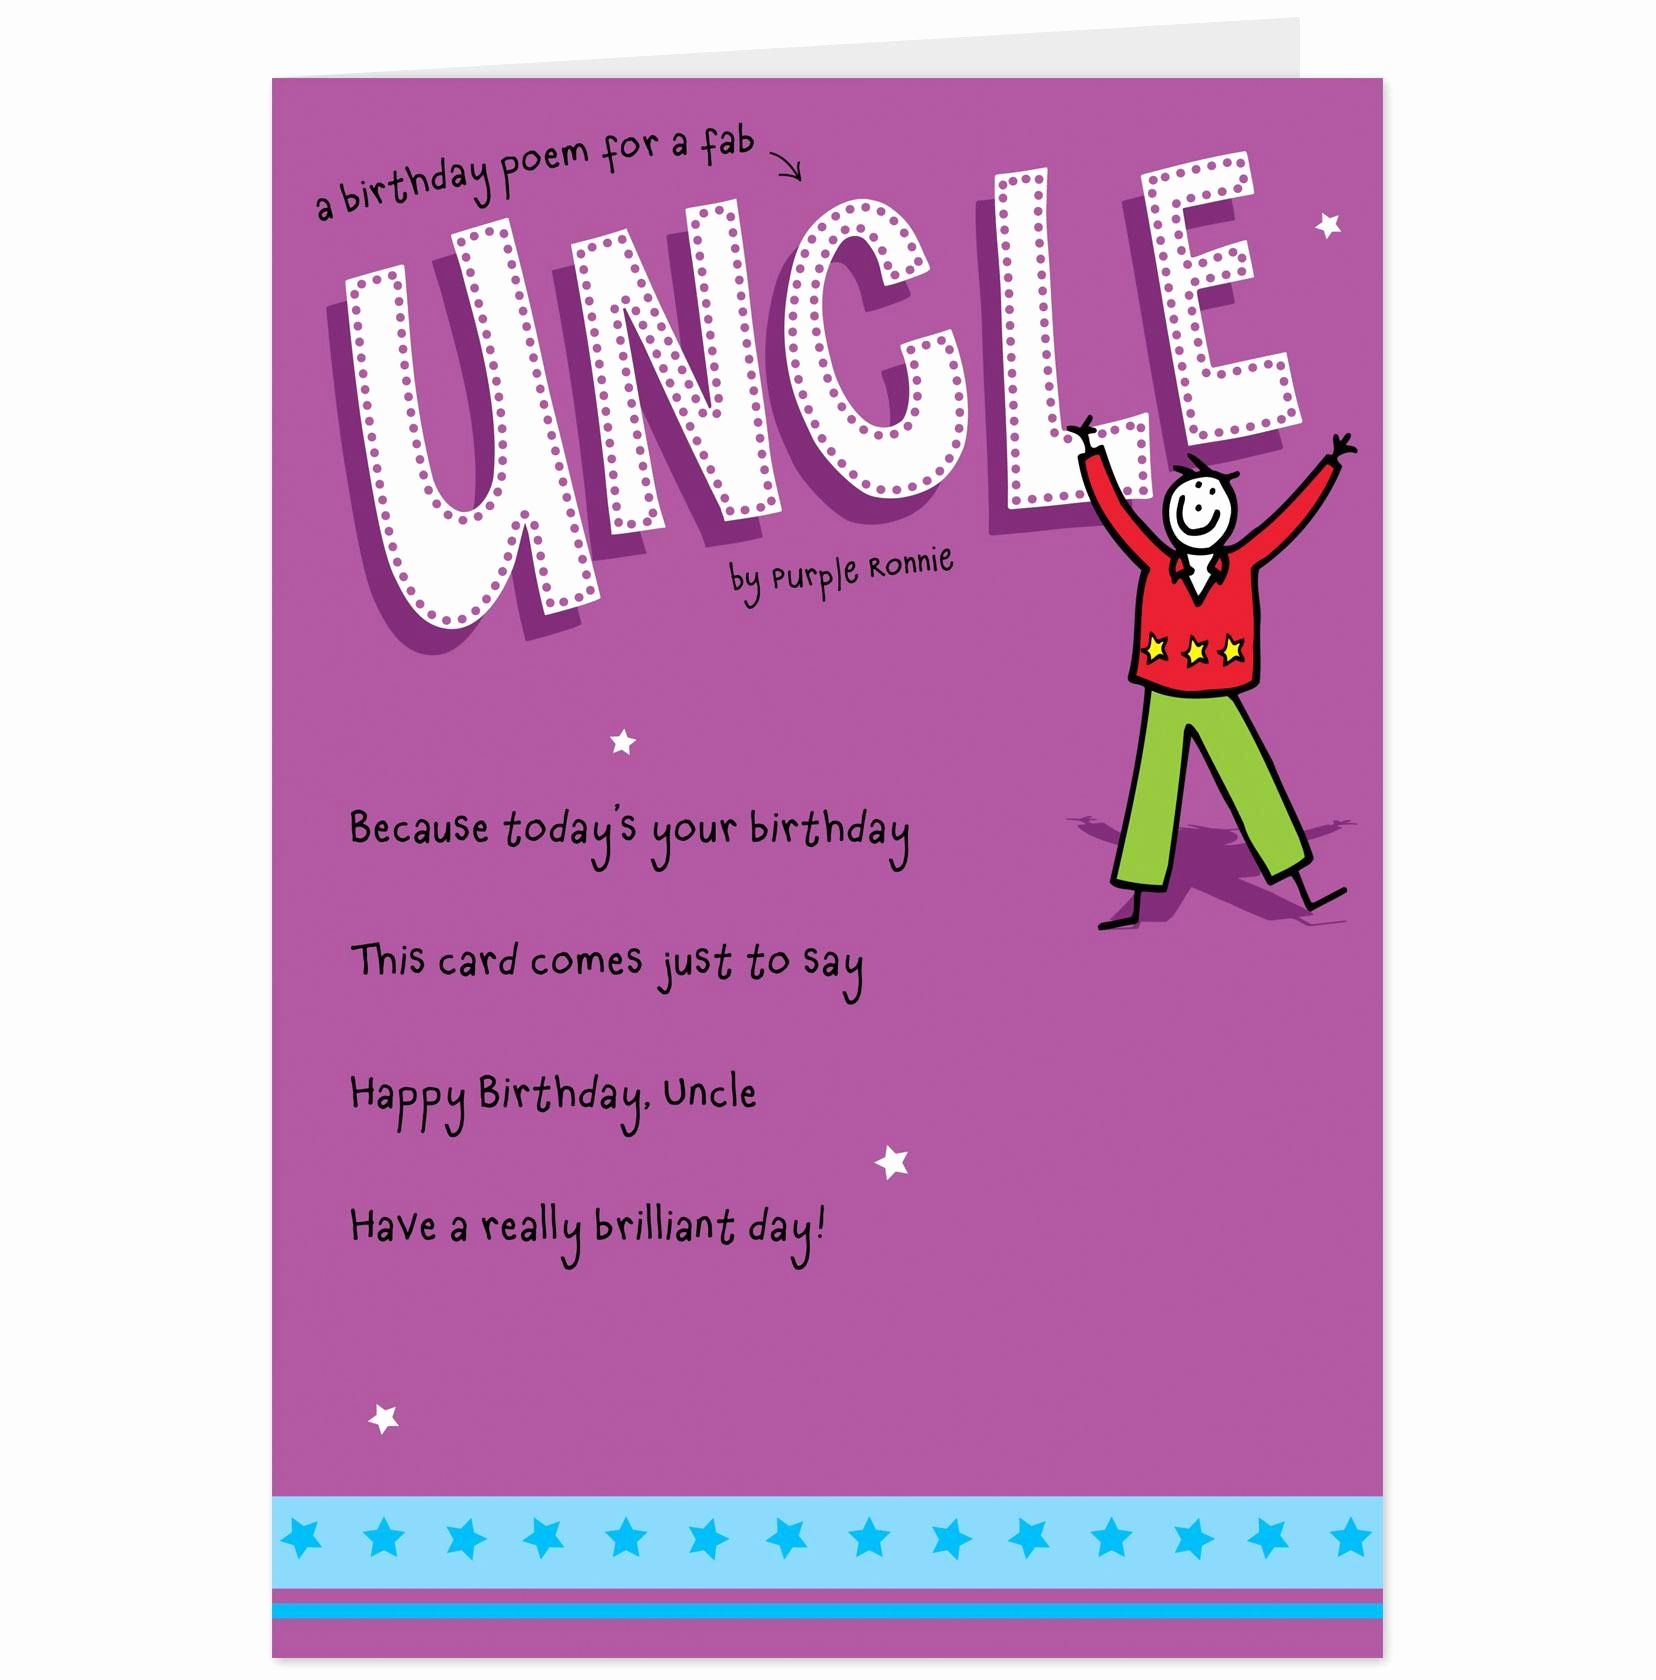 uncle birthday card funny ; uncle-birthday-card-messages-luxury-funny-birthday-card-sayings-for-uncles-male-relation-birthday-of-uncle-birthday-card-messages